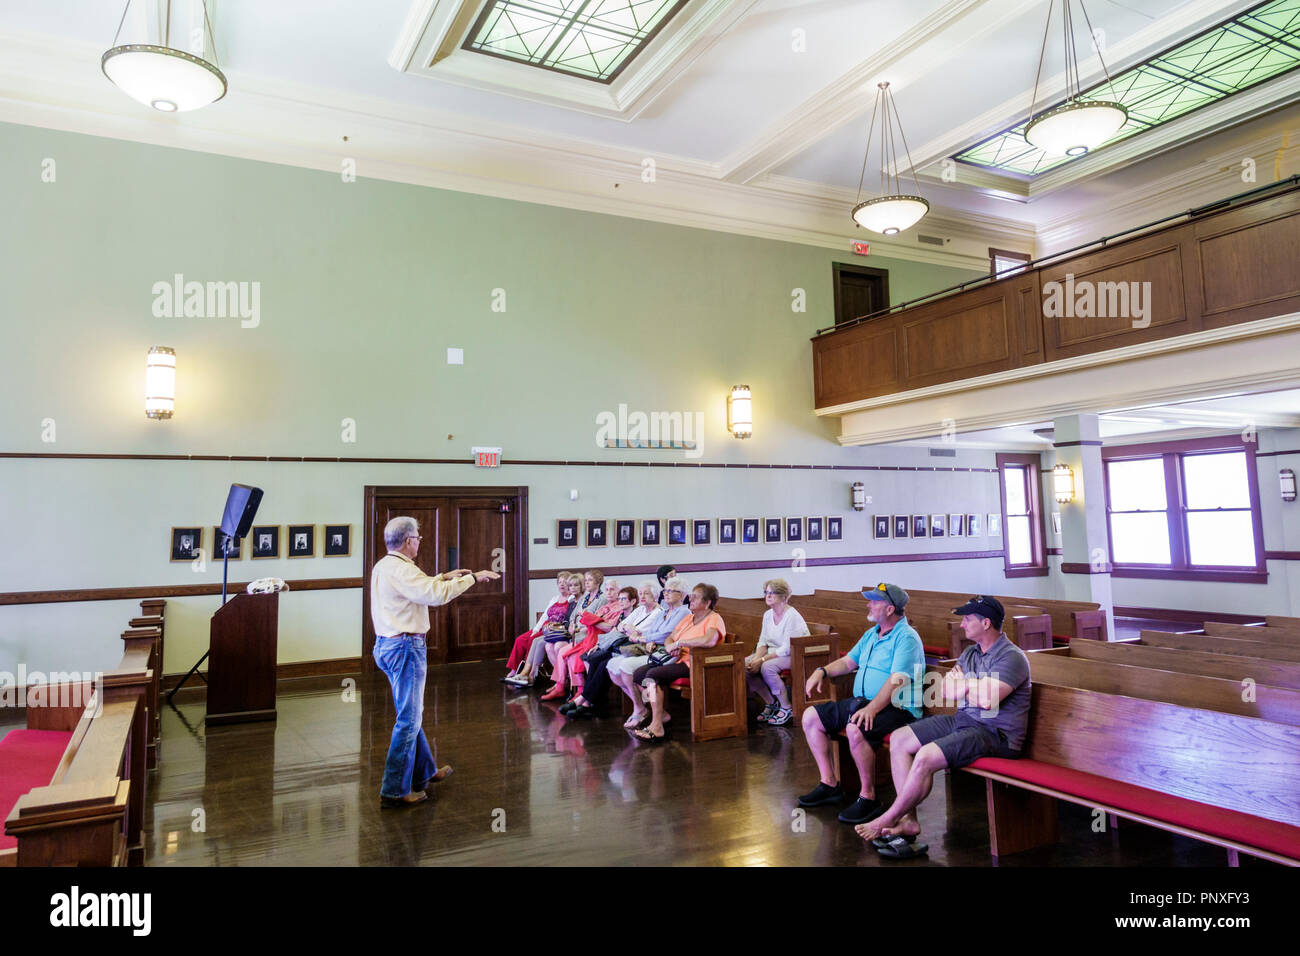 Florida West Palm Beach Palm Beach County History Museum 1916 County Court House Historic Inside Interior Adult Adults Man Men Male Speaking Li Stock Photo Alamy